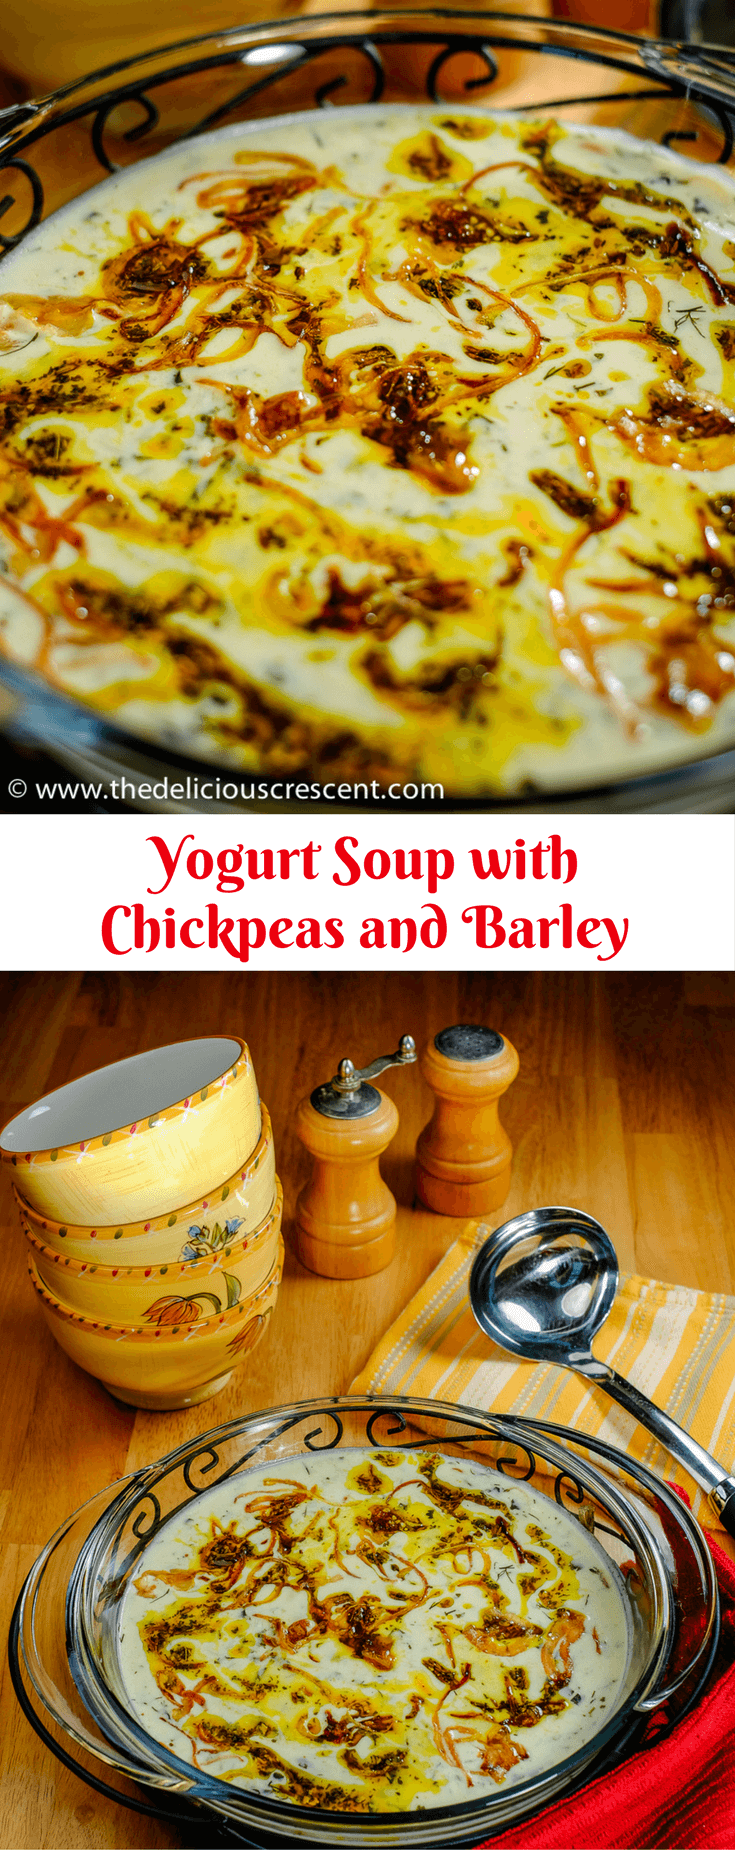 Yogurt Soup with chickpeas and barley is a creamy, aromatic heart healthy vegetarian soup with good fiber, protein, potassium and healthy fats! #soup #yogurt #vegetarian #healthyfood